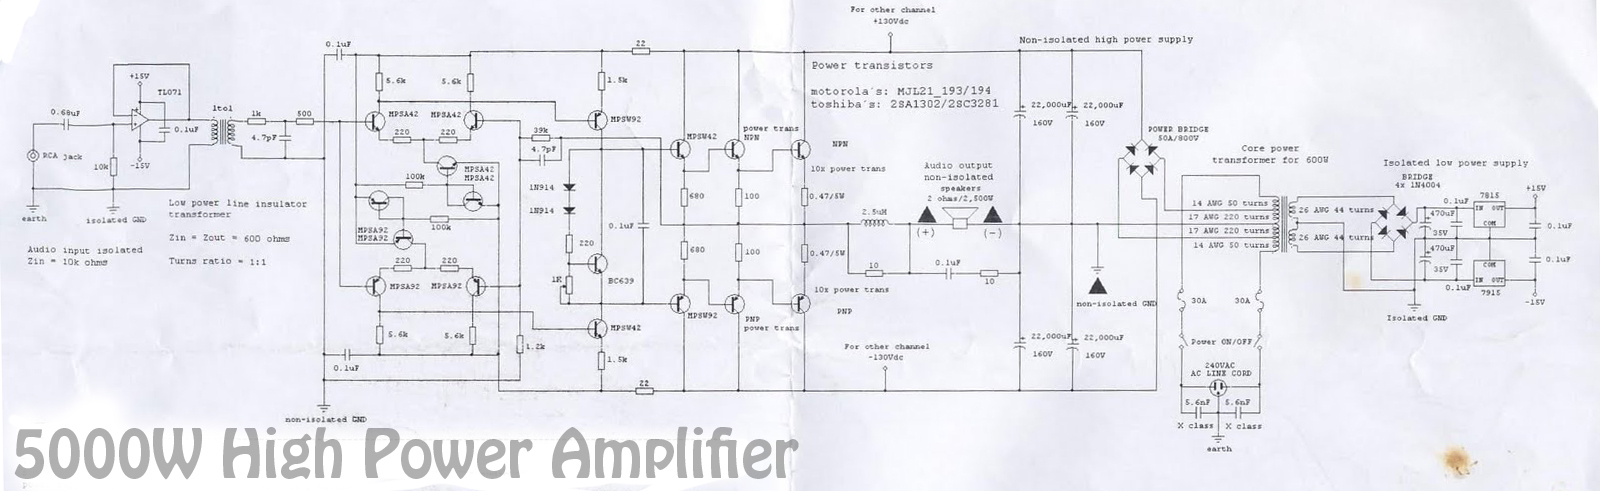 5000 Watts High Power Amplifier Schematic | Subwoofer B Amplifier